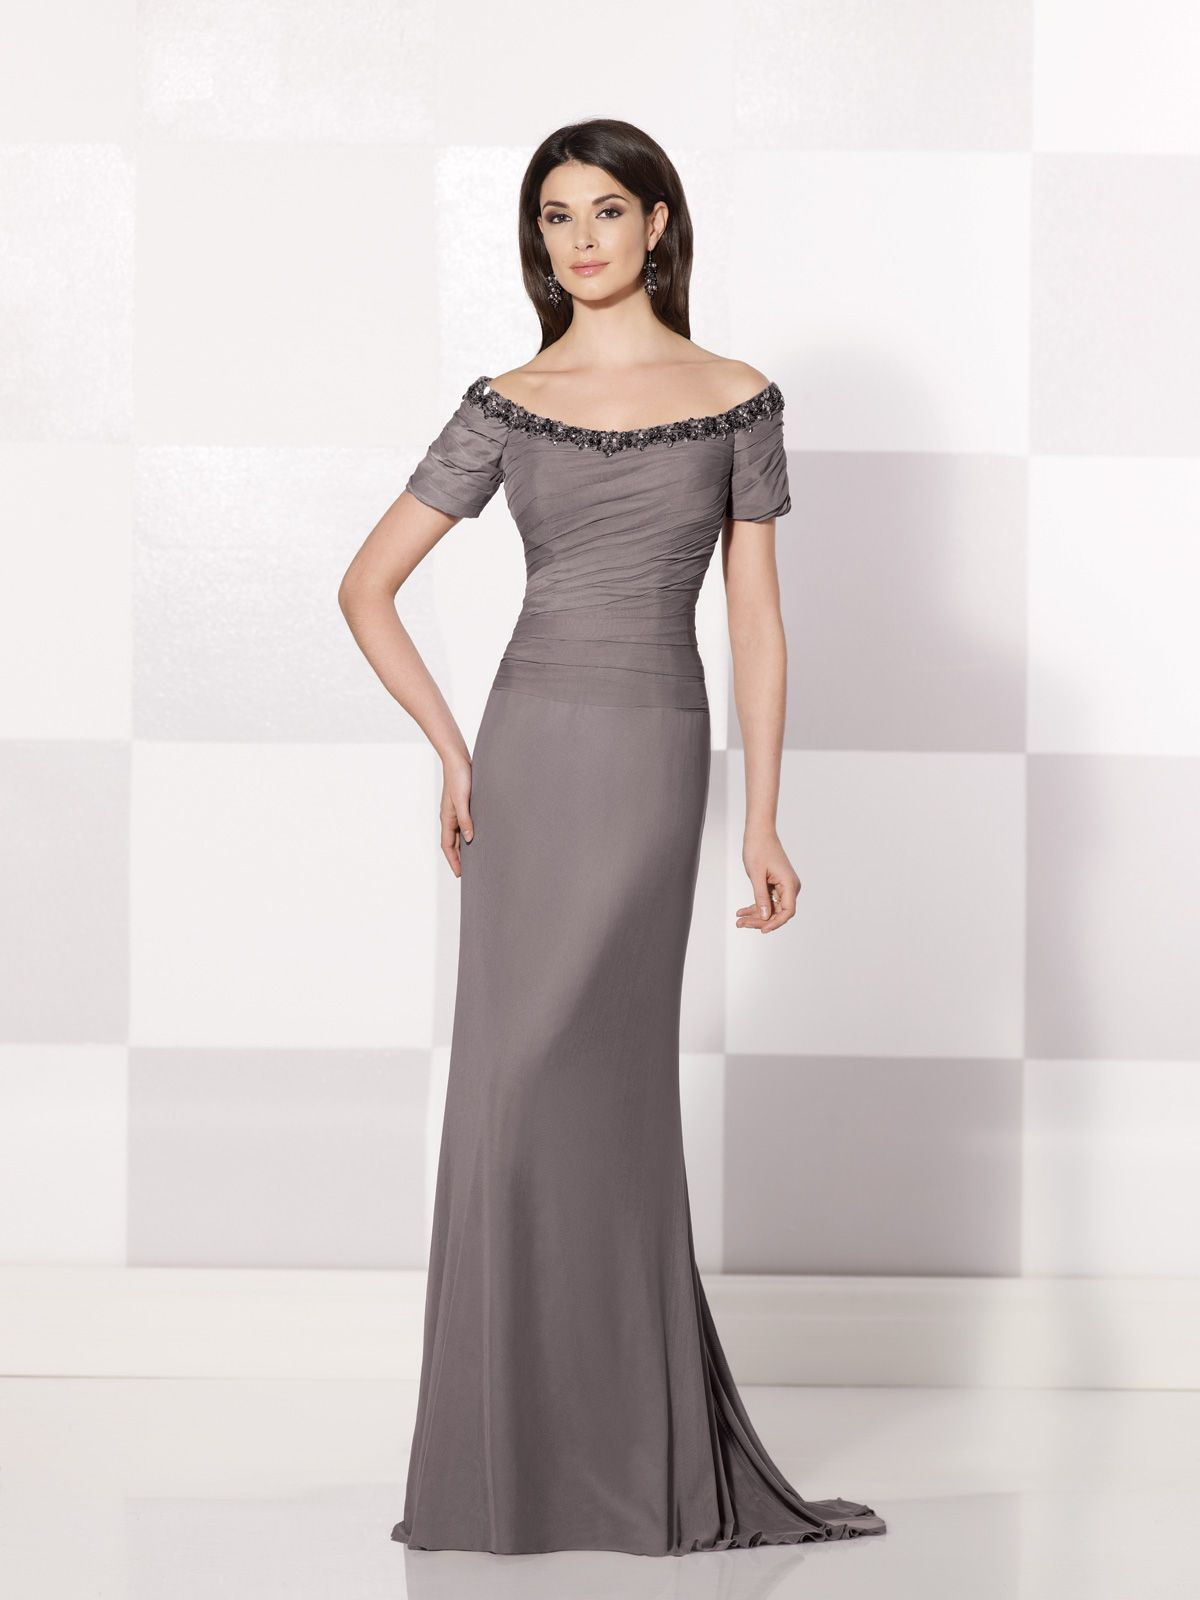 553f52687e Stretch mesh A-line dress with front and back hand-beaded off-the-shoulder  necklines